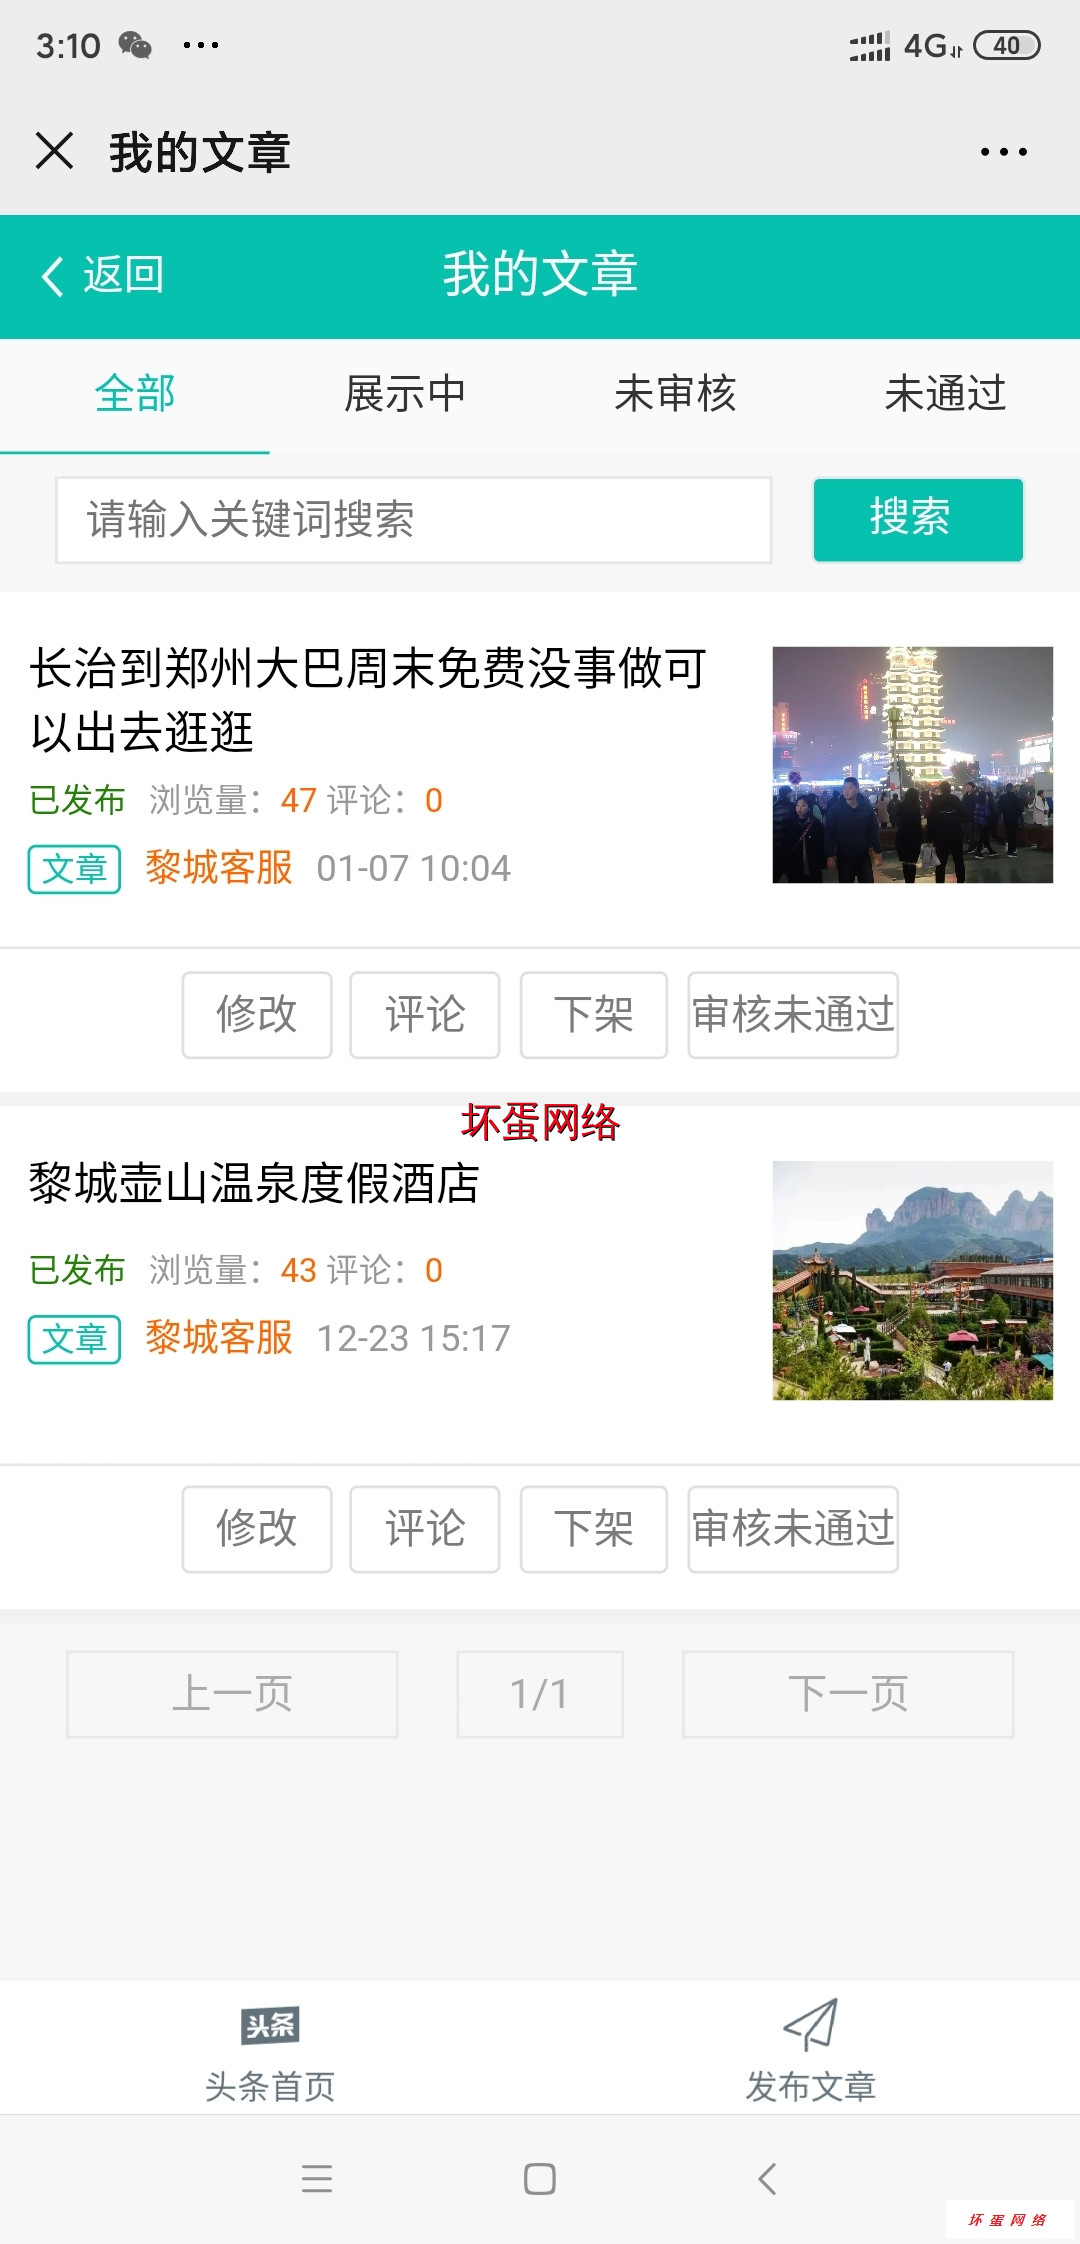 Screenshot_2020-01-21-15-10-56-605_com.tencent.mm.jpg